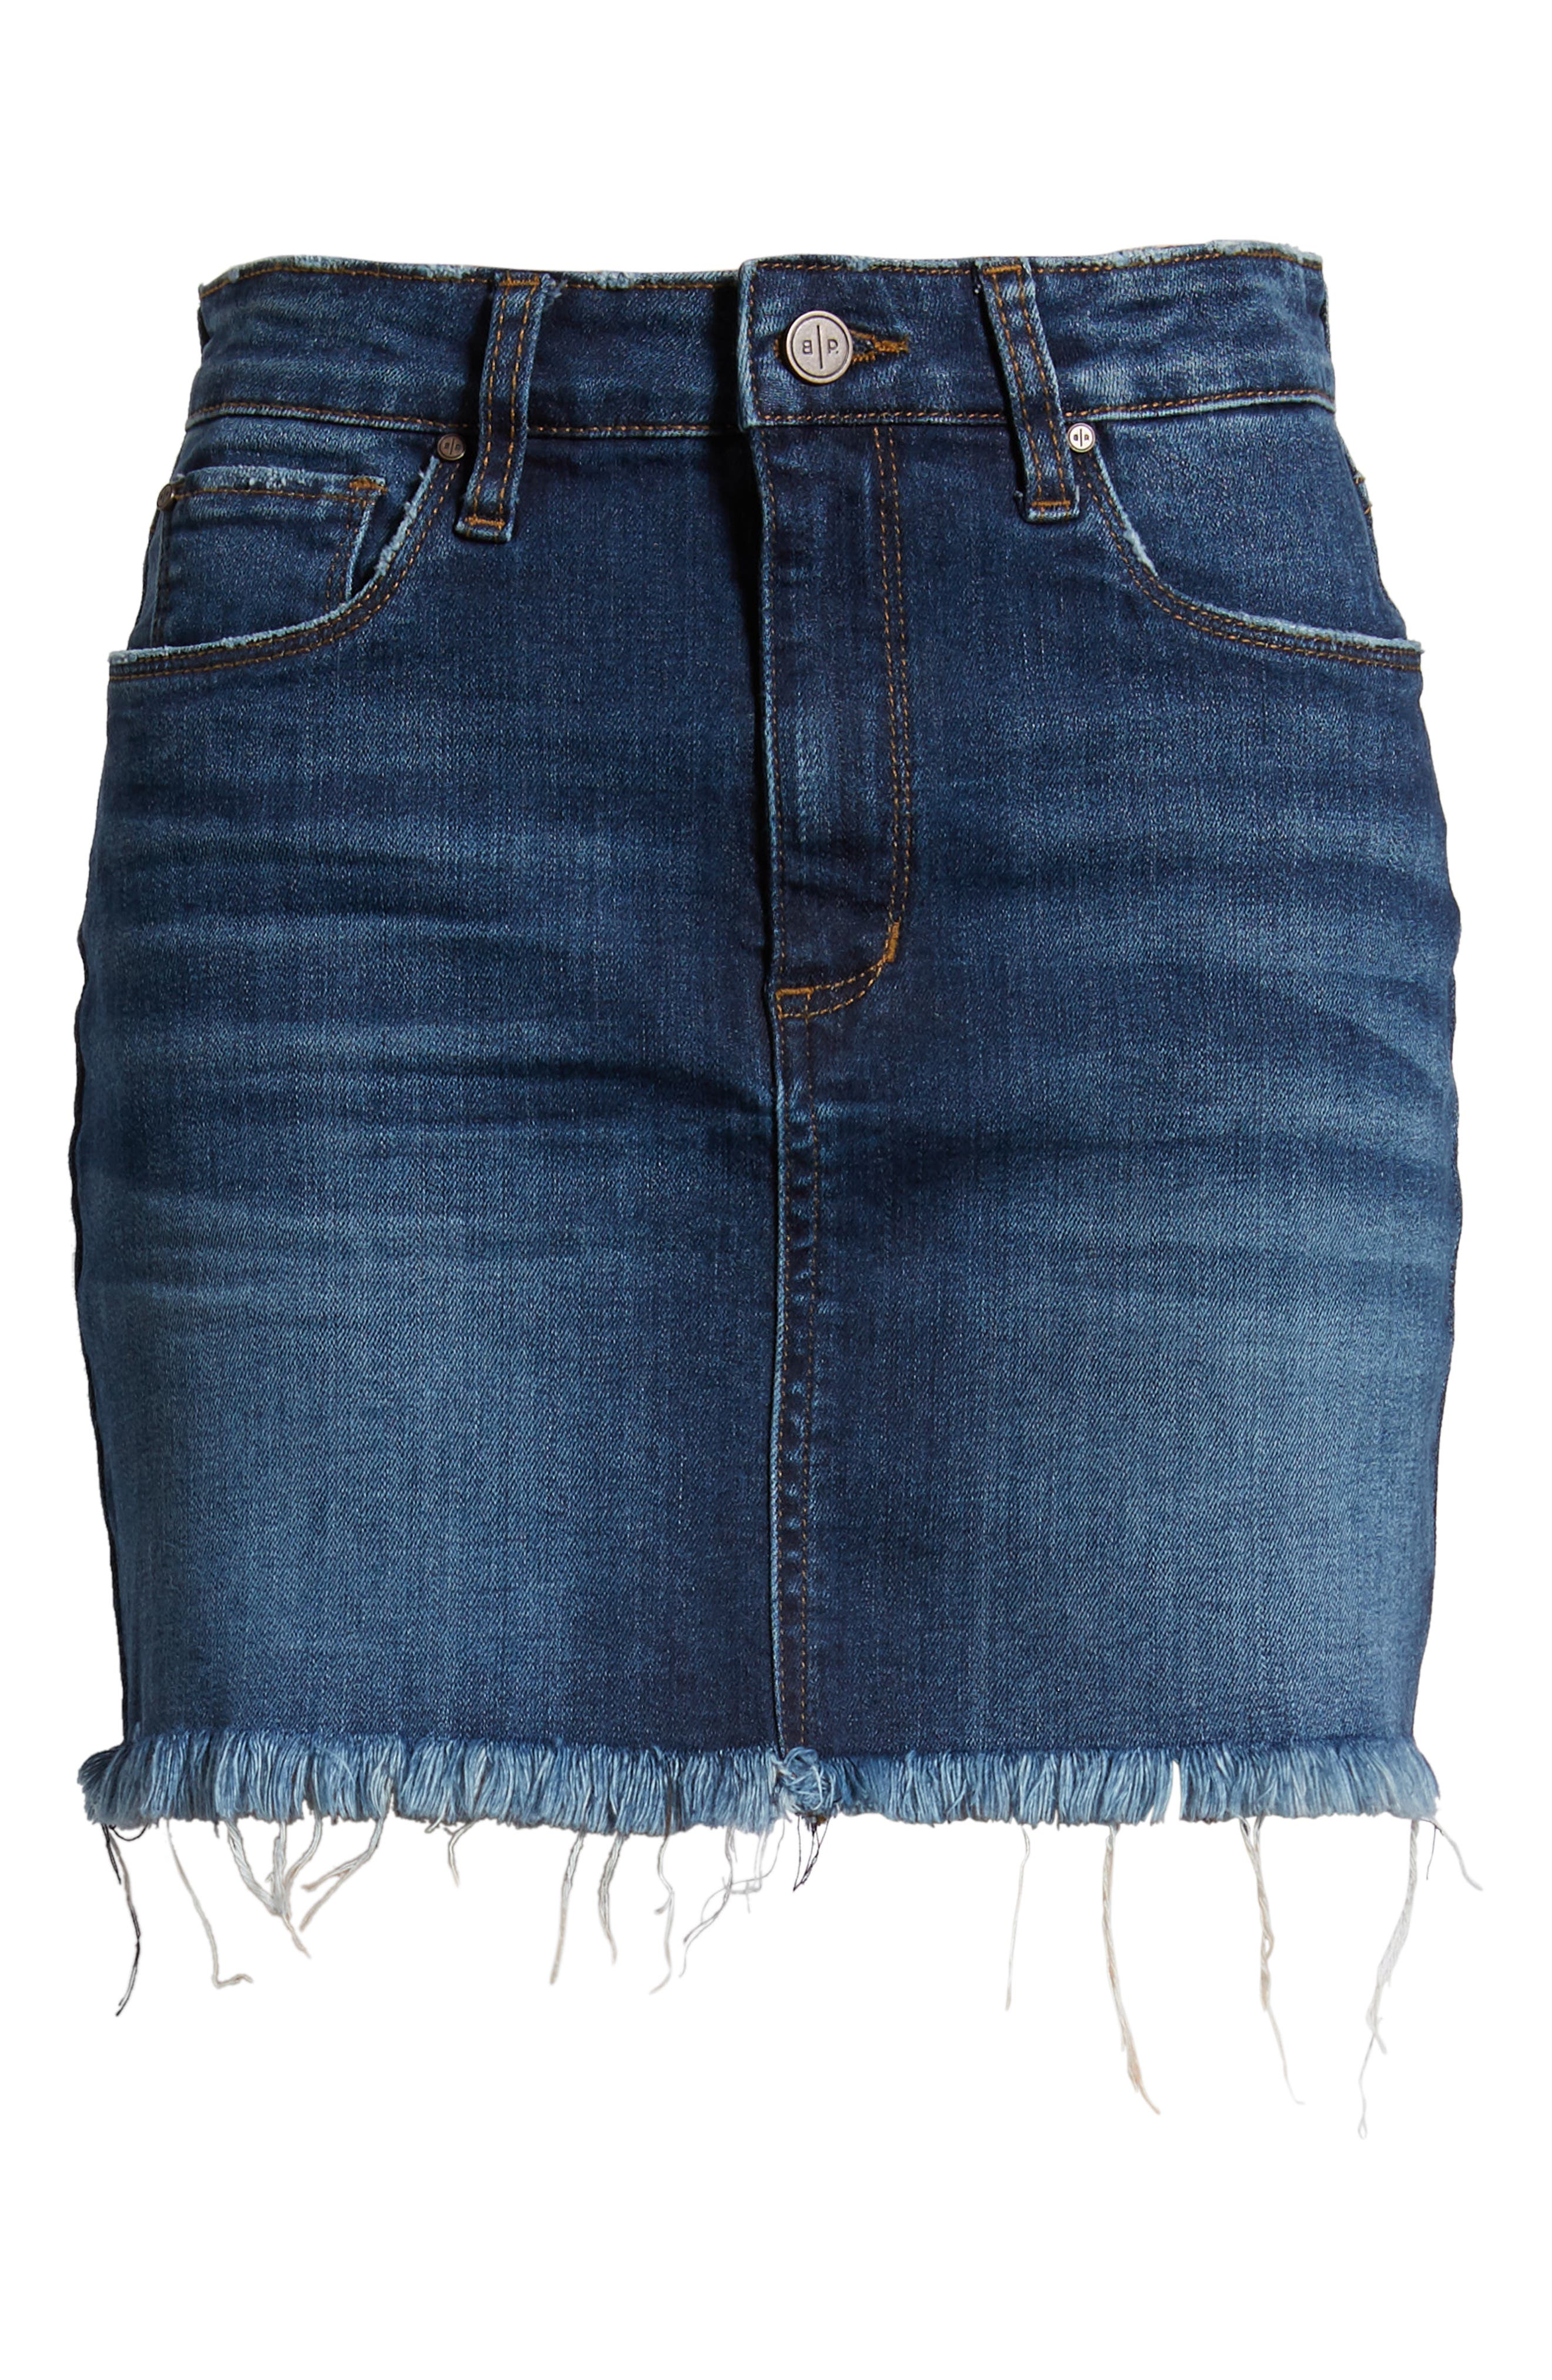 Raw Hem Denim Miniskirt,                             Alternate thumbnail 7, color,                             MEDIUM WASH